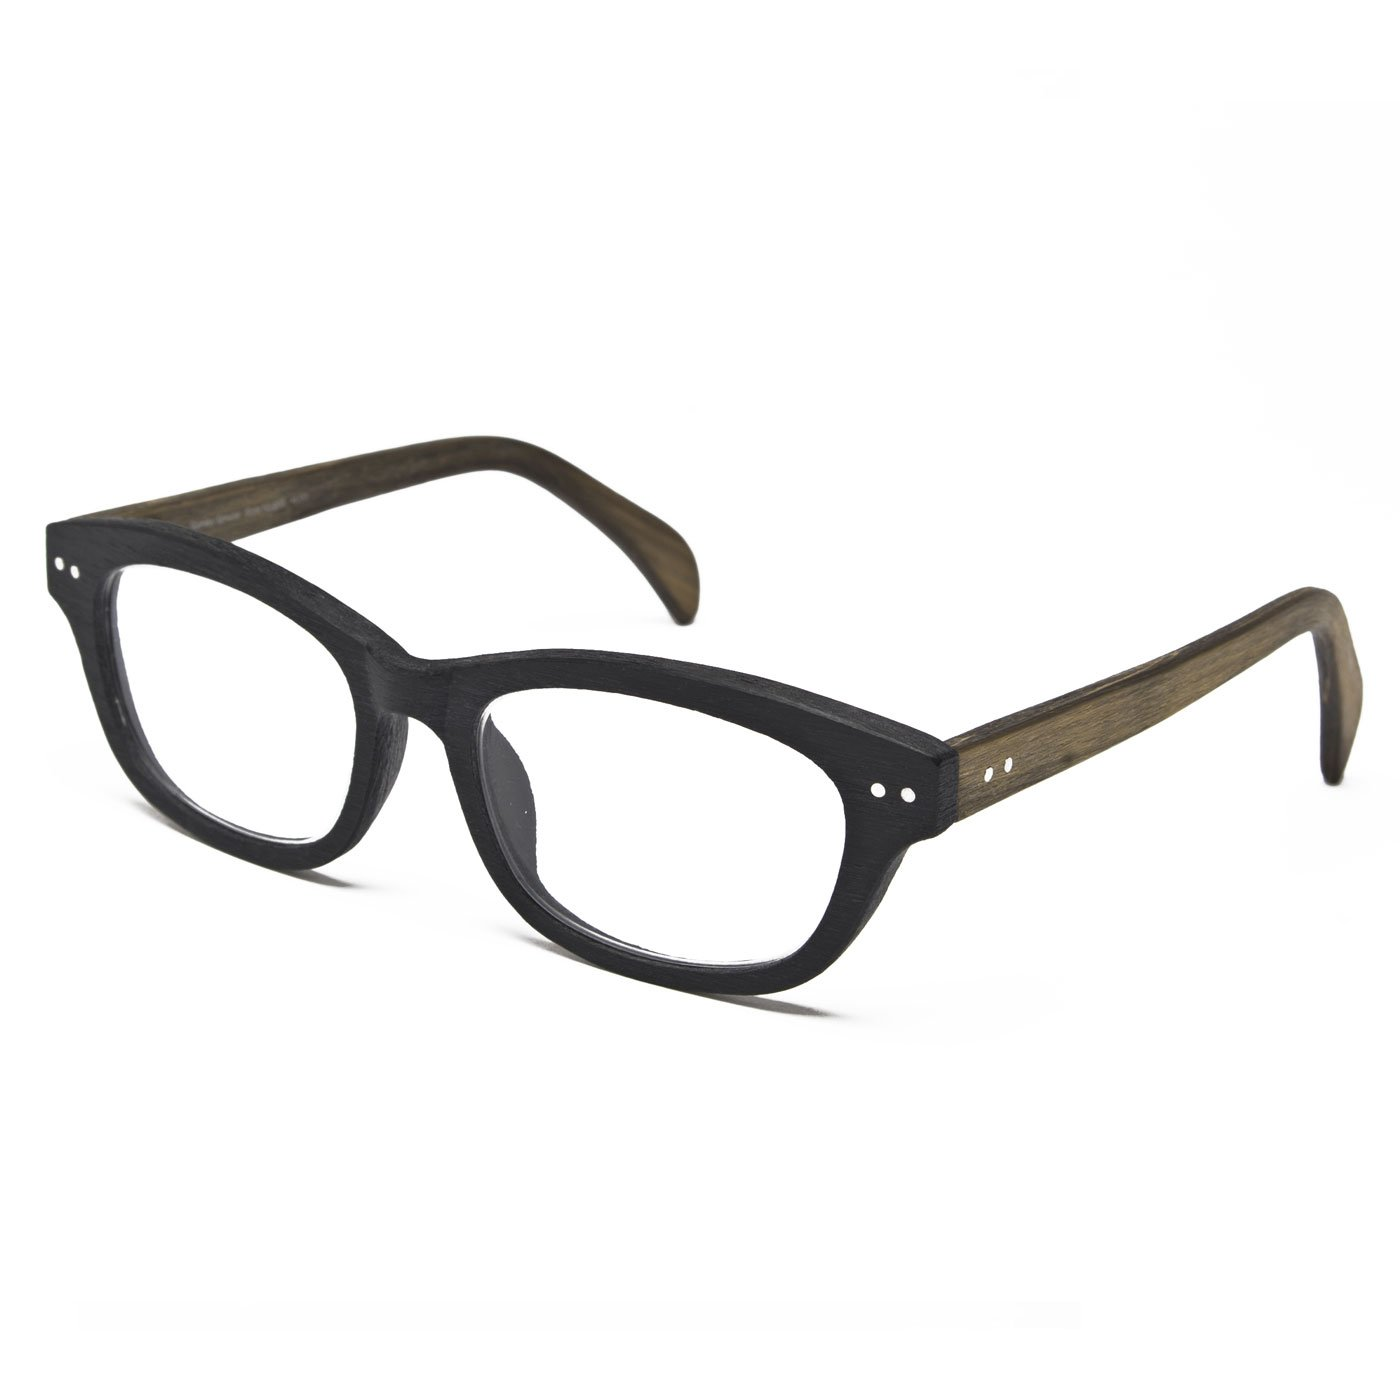 Seymour and Smith Stanley Spruce Reading Glasses For Men and Women (Black Charcoal with Natural Temples, 1.25)